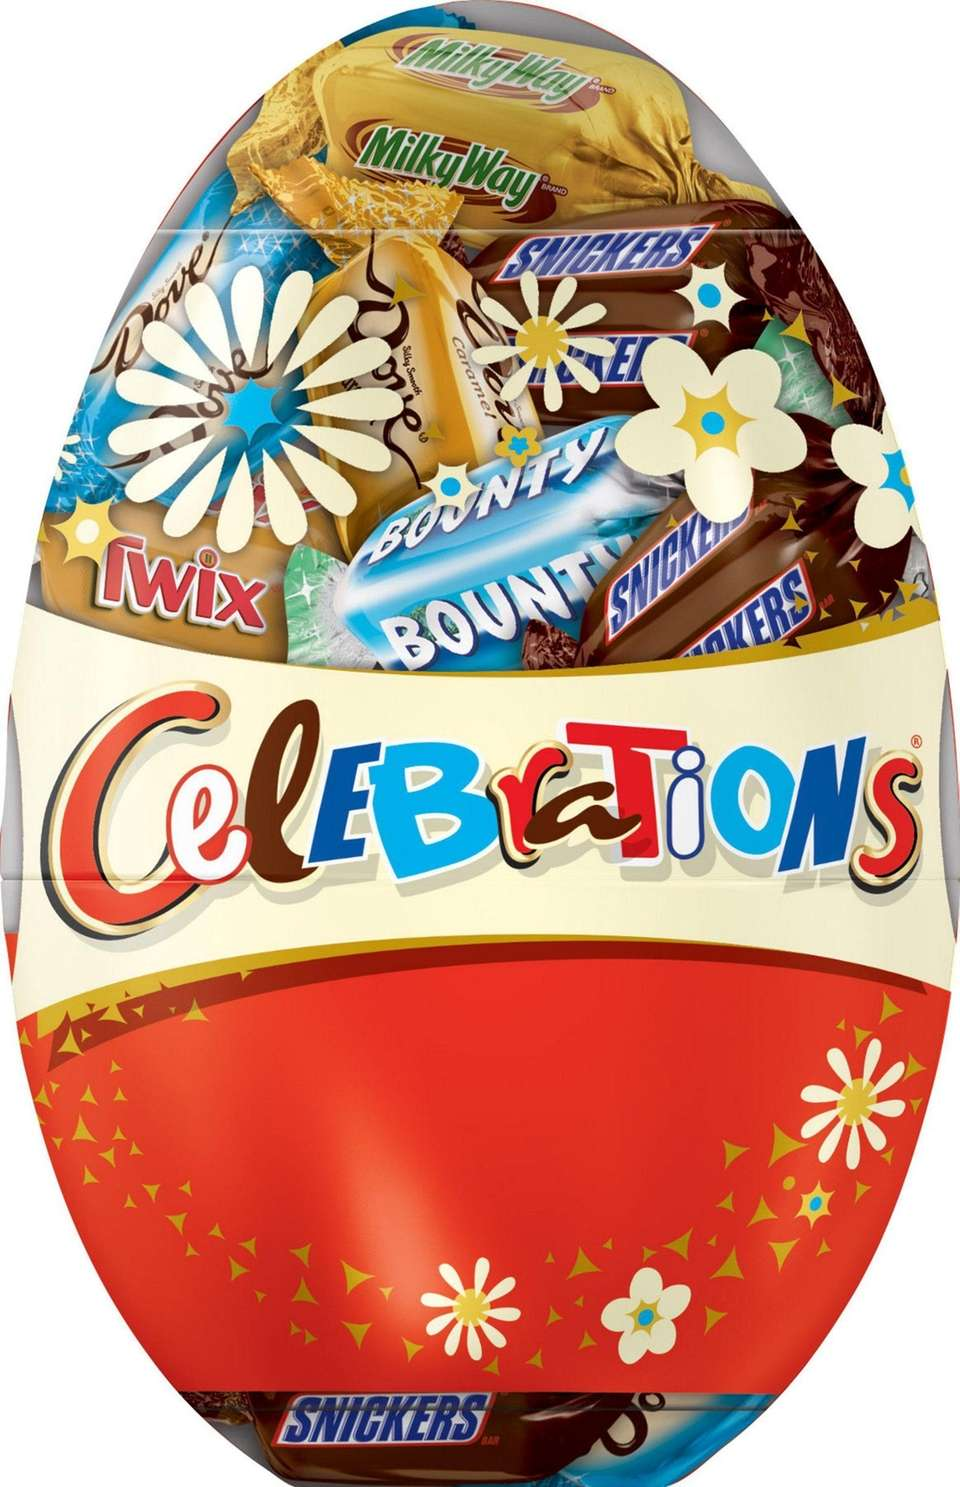 This surprise candy egg comes with mini Snickers,